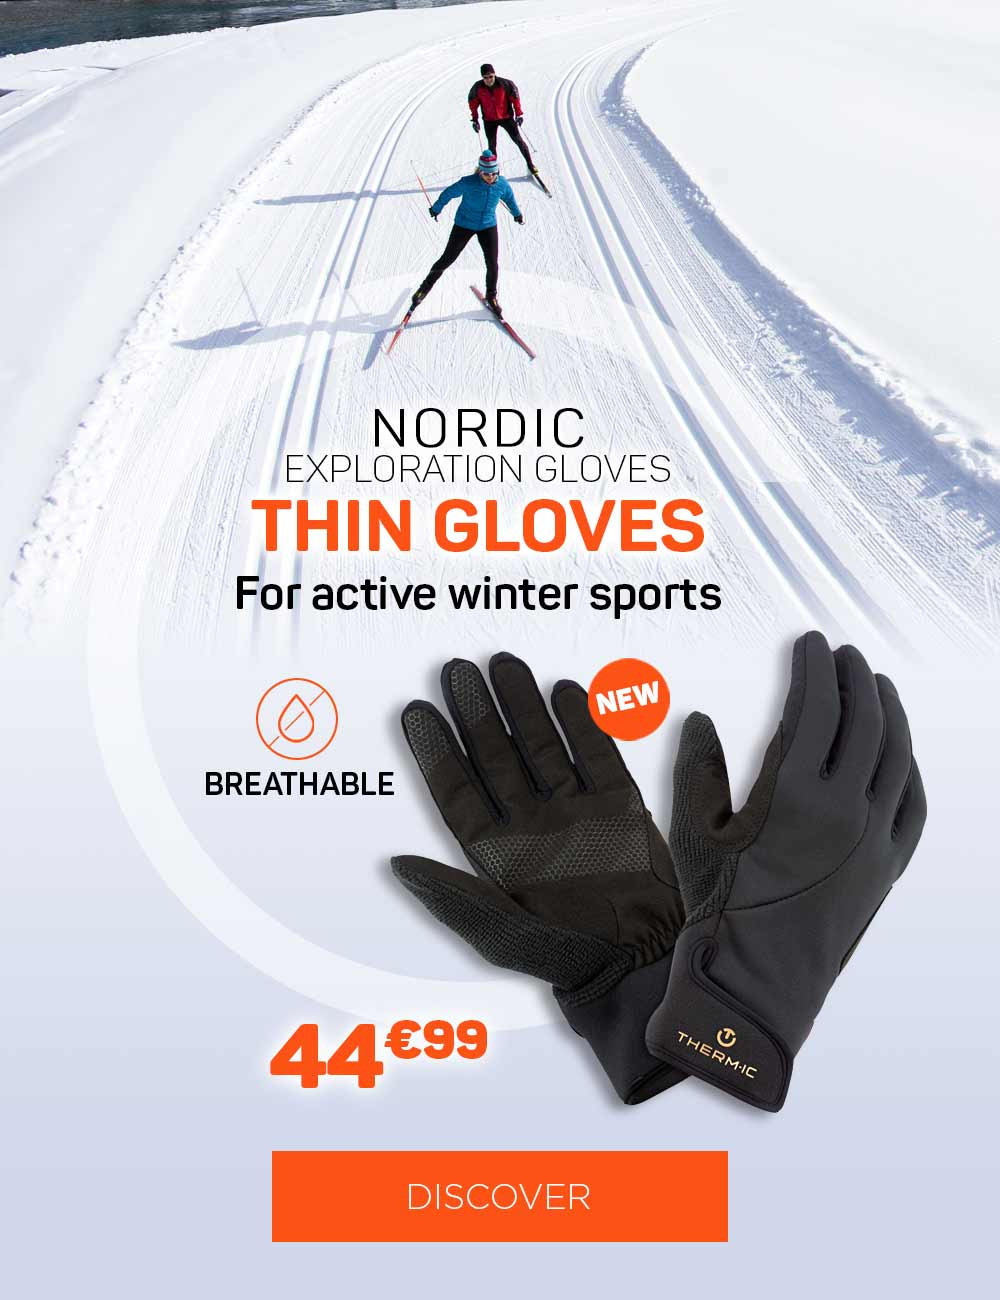 Thin and insulated gloves ideal for active sports such as cross-country skiing or ski touring